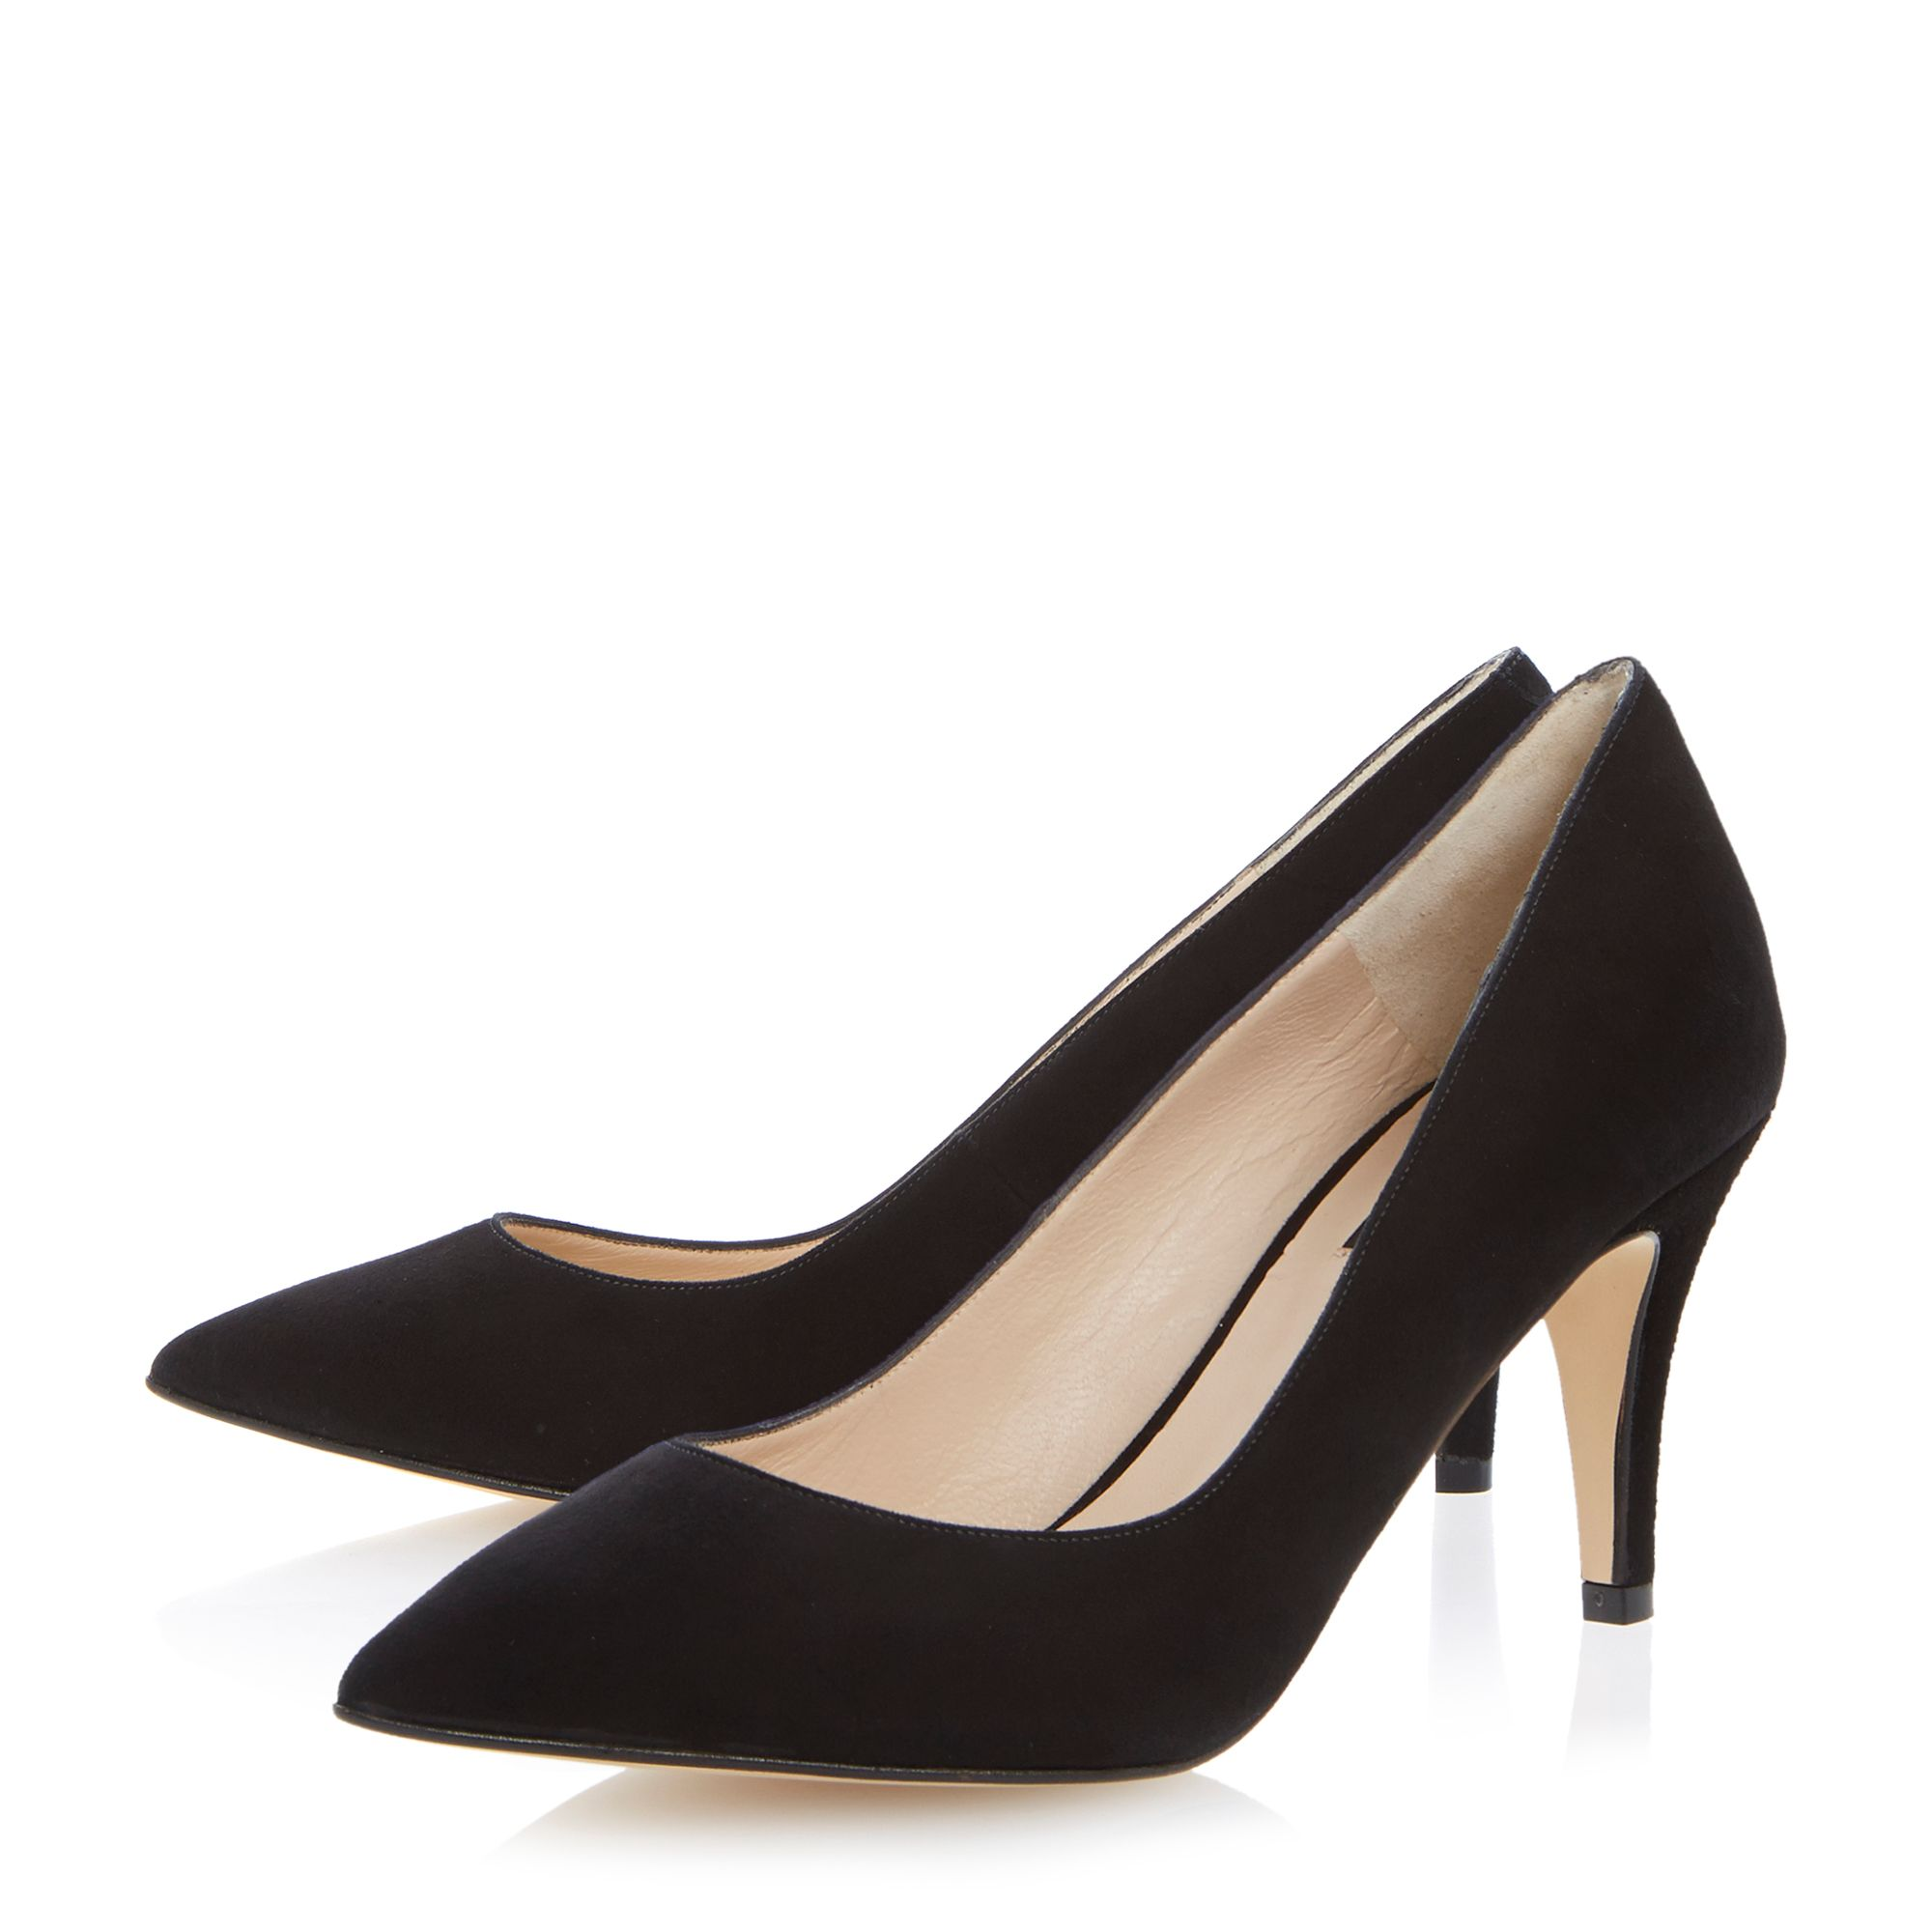 Astly suede pointed toe stiletto court shoes